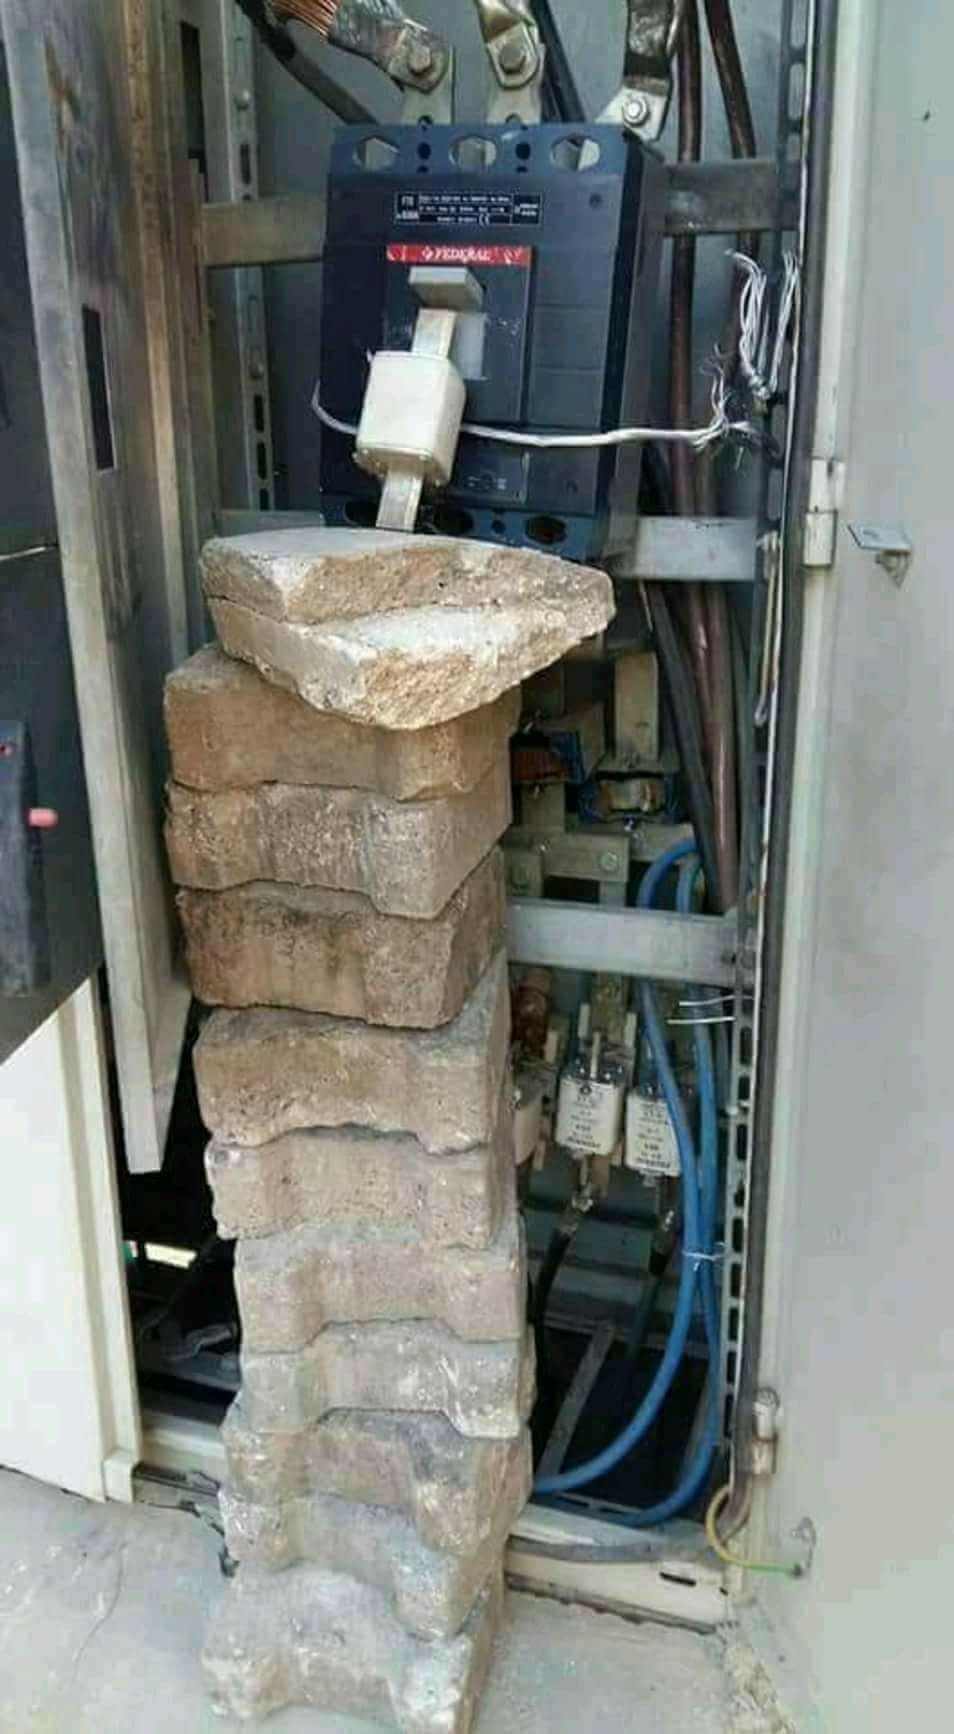 That's how u do it!! Safety fail